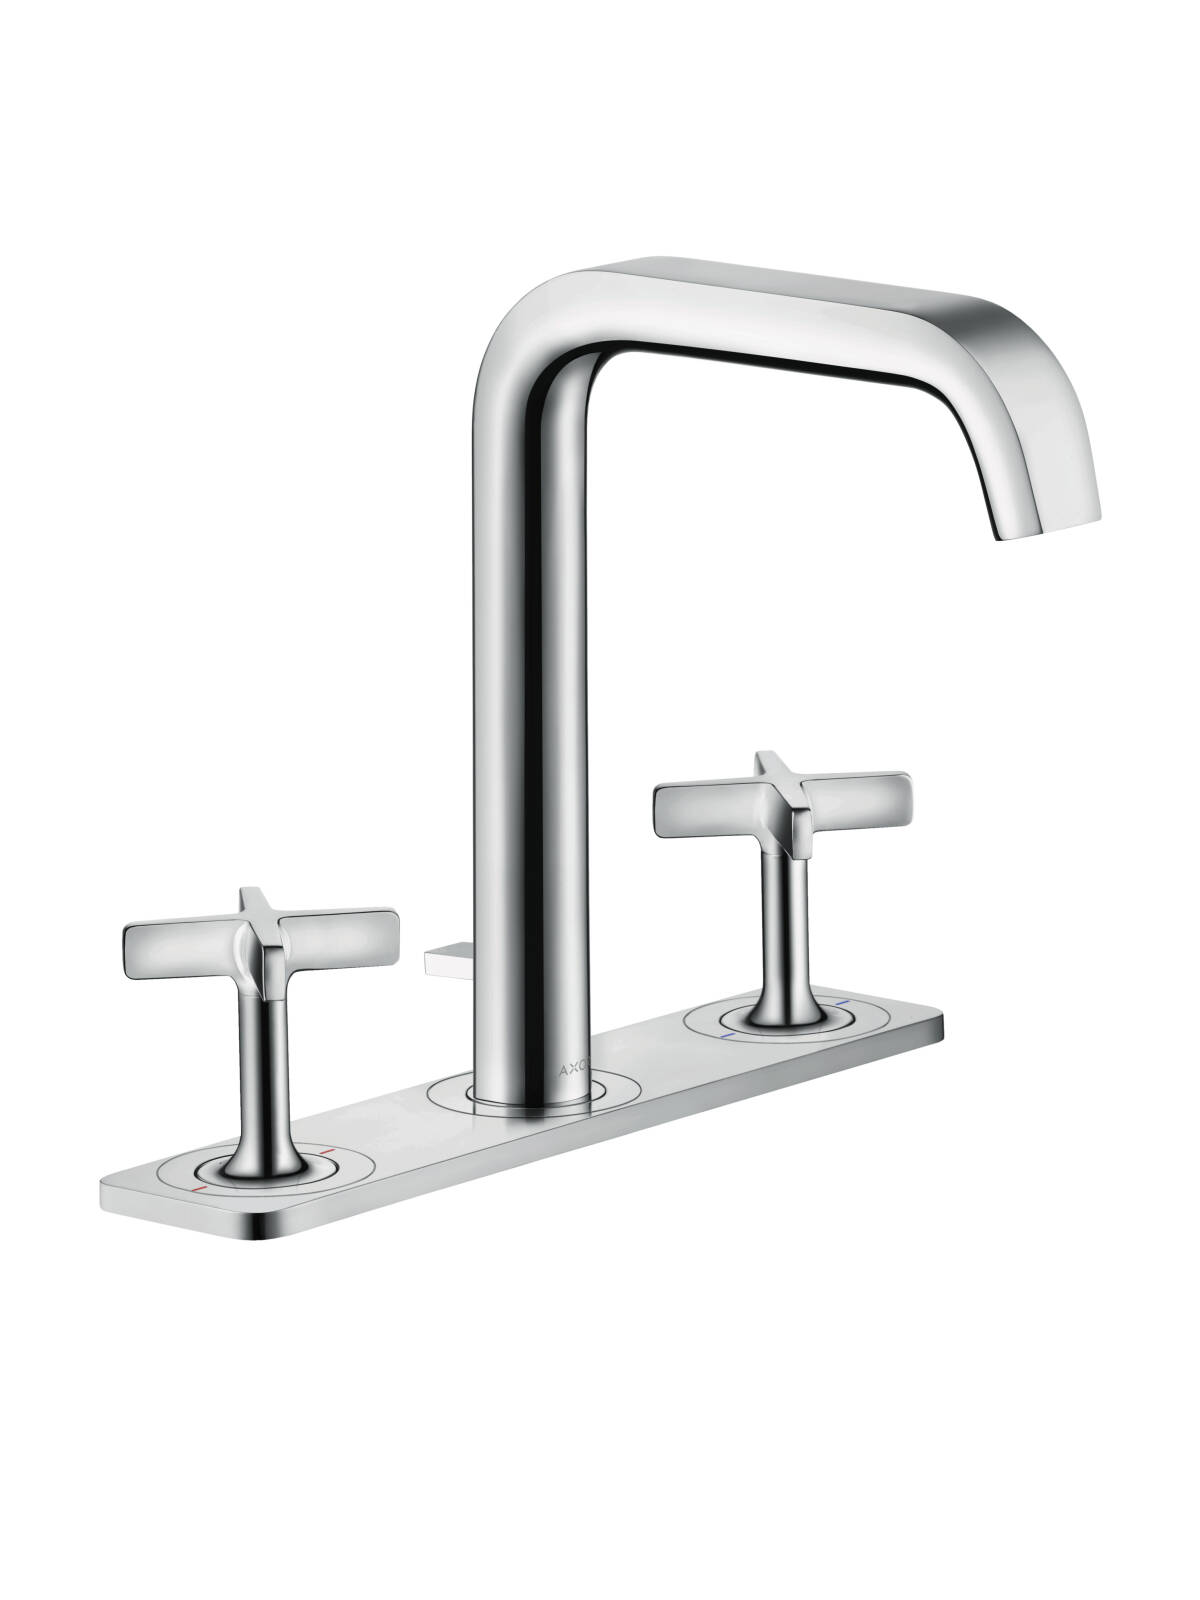 3-hole basin mixer 170 with pop-up waste set and plate, Brushed Chrome, 36116260